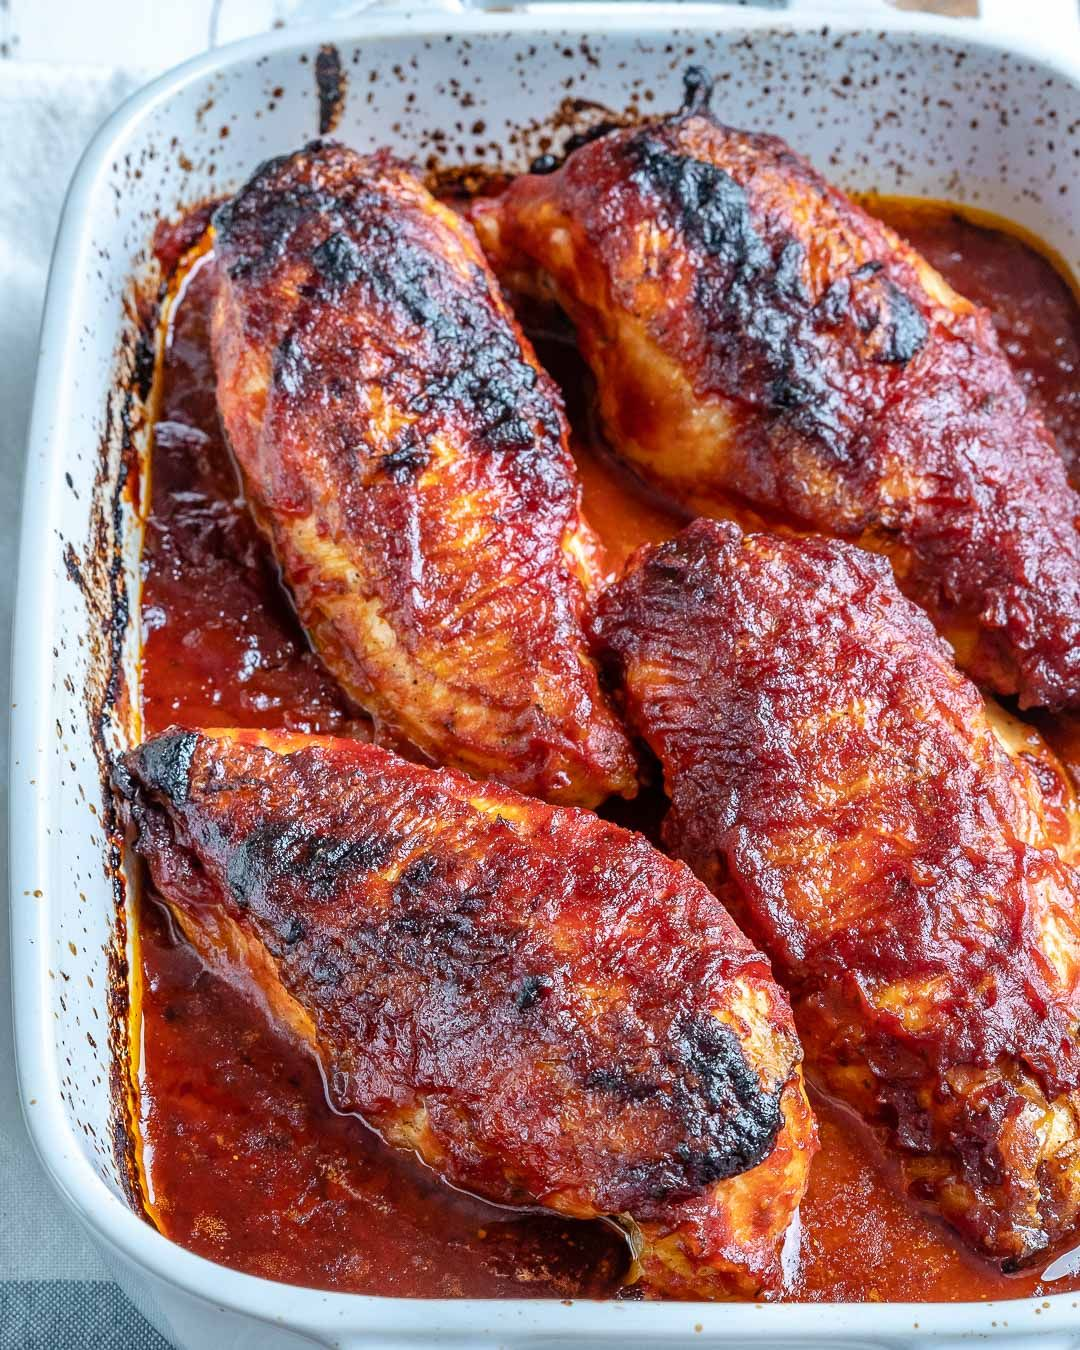 Easy And Clean Roasted Bbq Chicken For Happy Family Dinners Clean Food Crush In 2020 Clean Food Crush Clean Recipes Clean Dinner Recipes